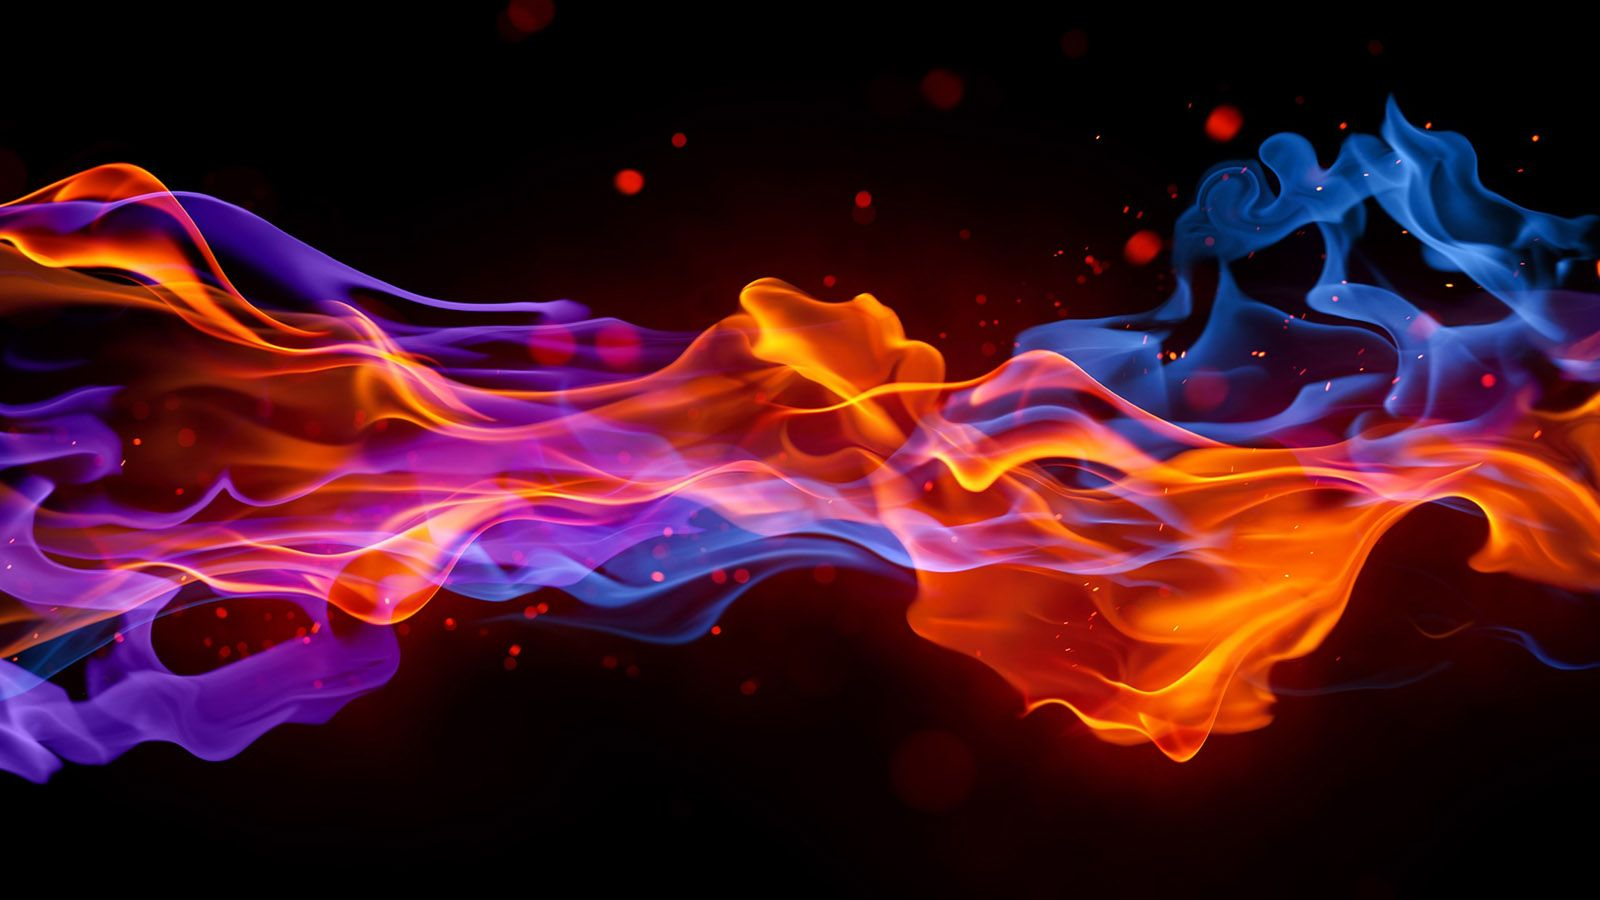 Red And Blue Fire Wallpaper 2048x1152 Wallpapers Abstract